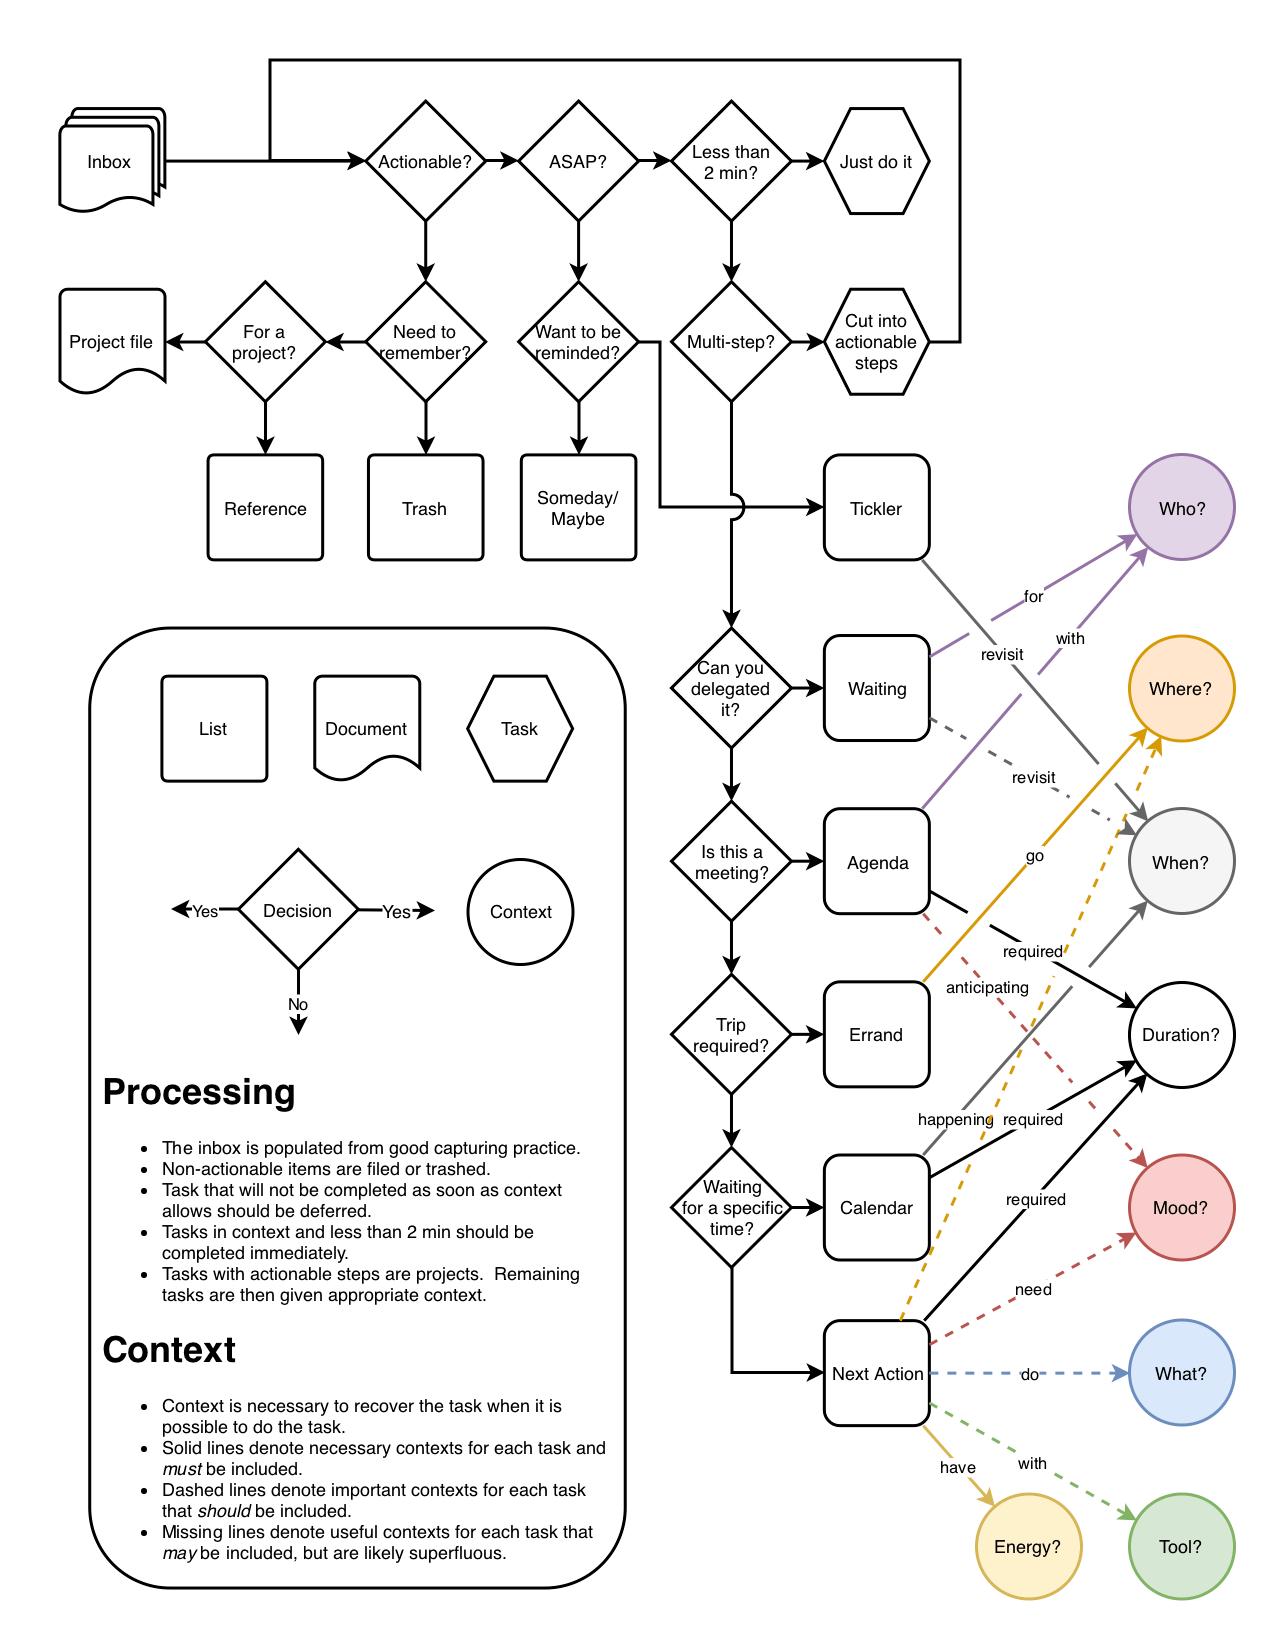 Processing flow chart I made for helping choose contexts : gtd